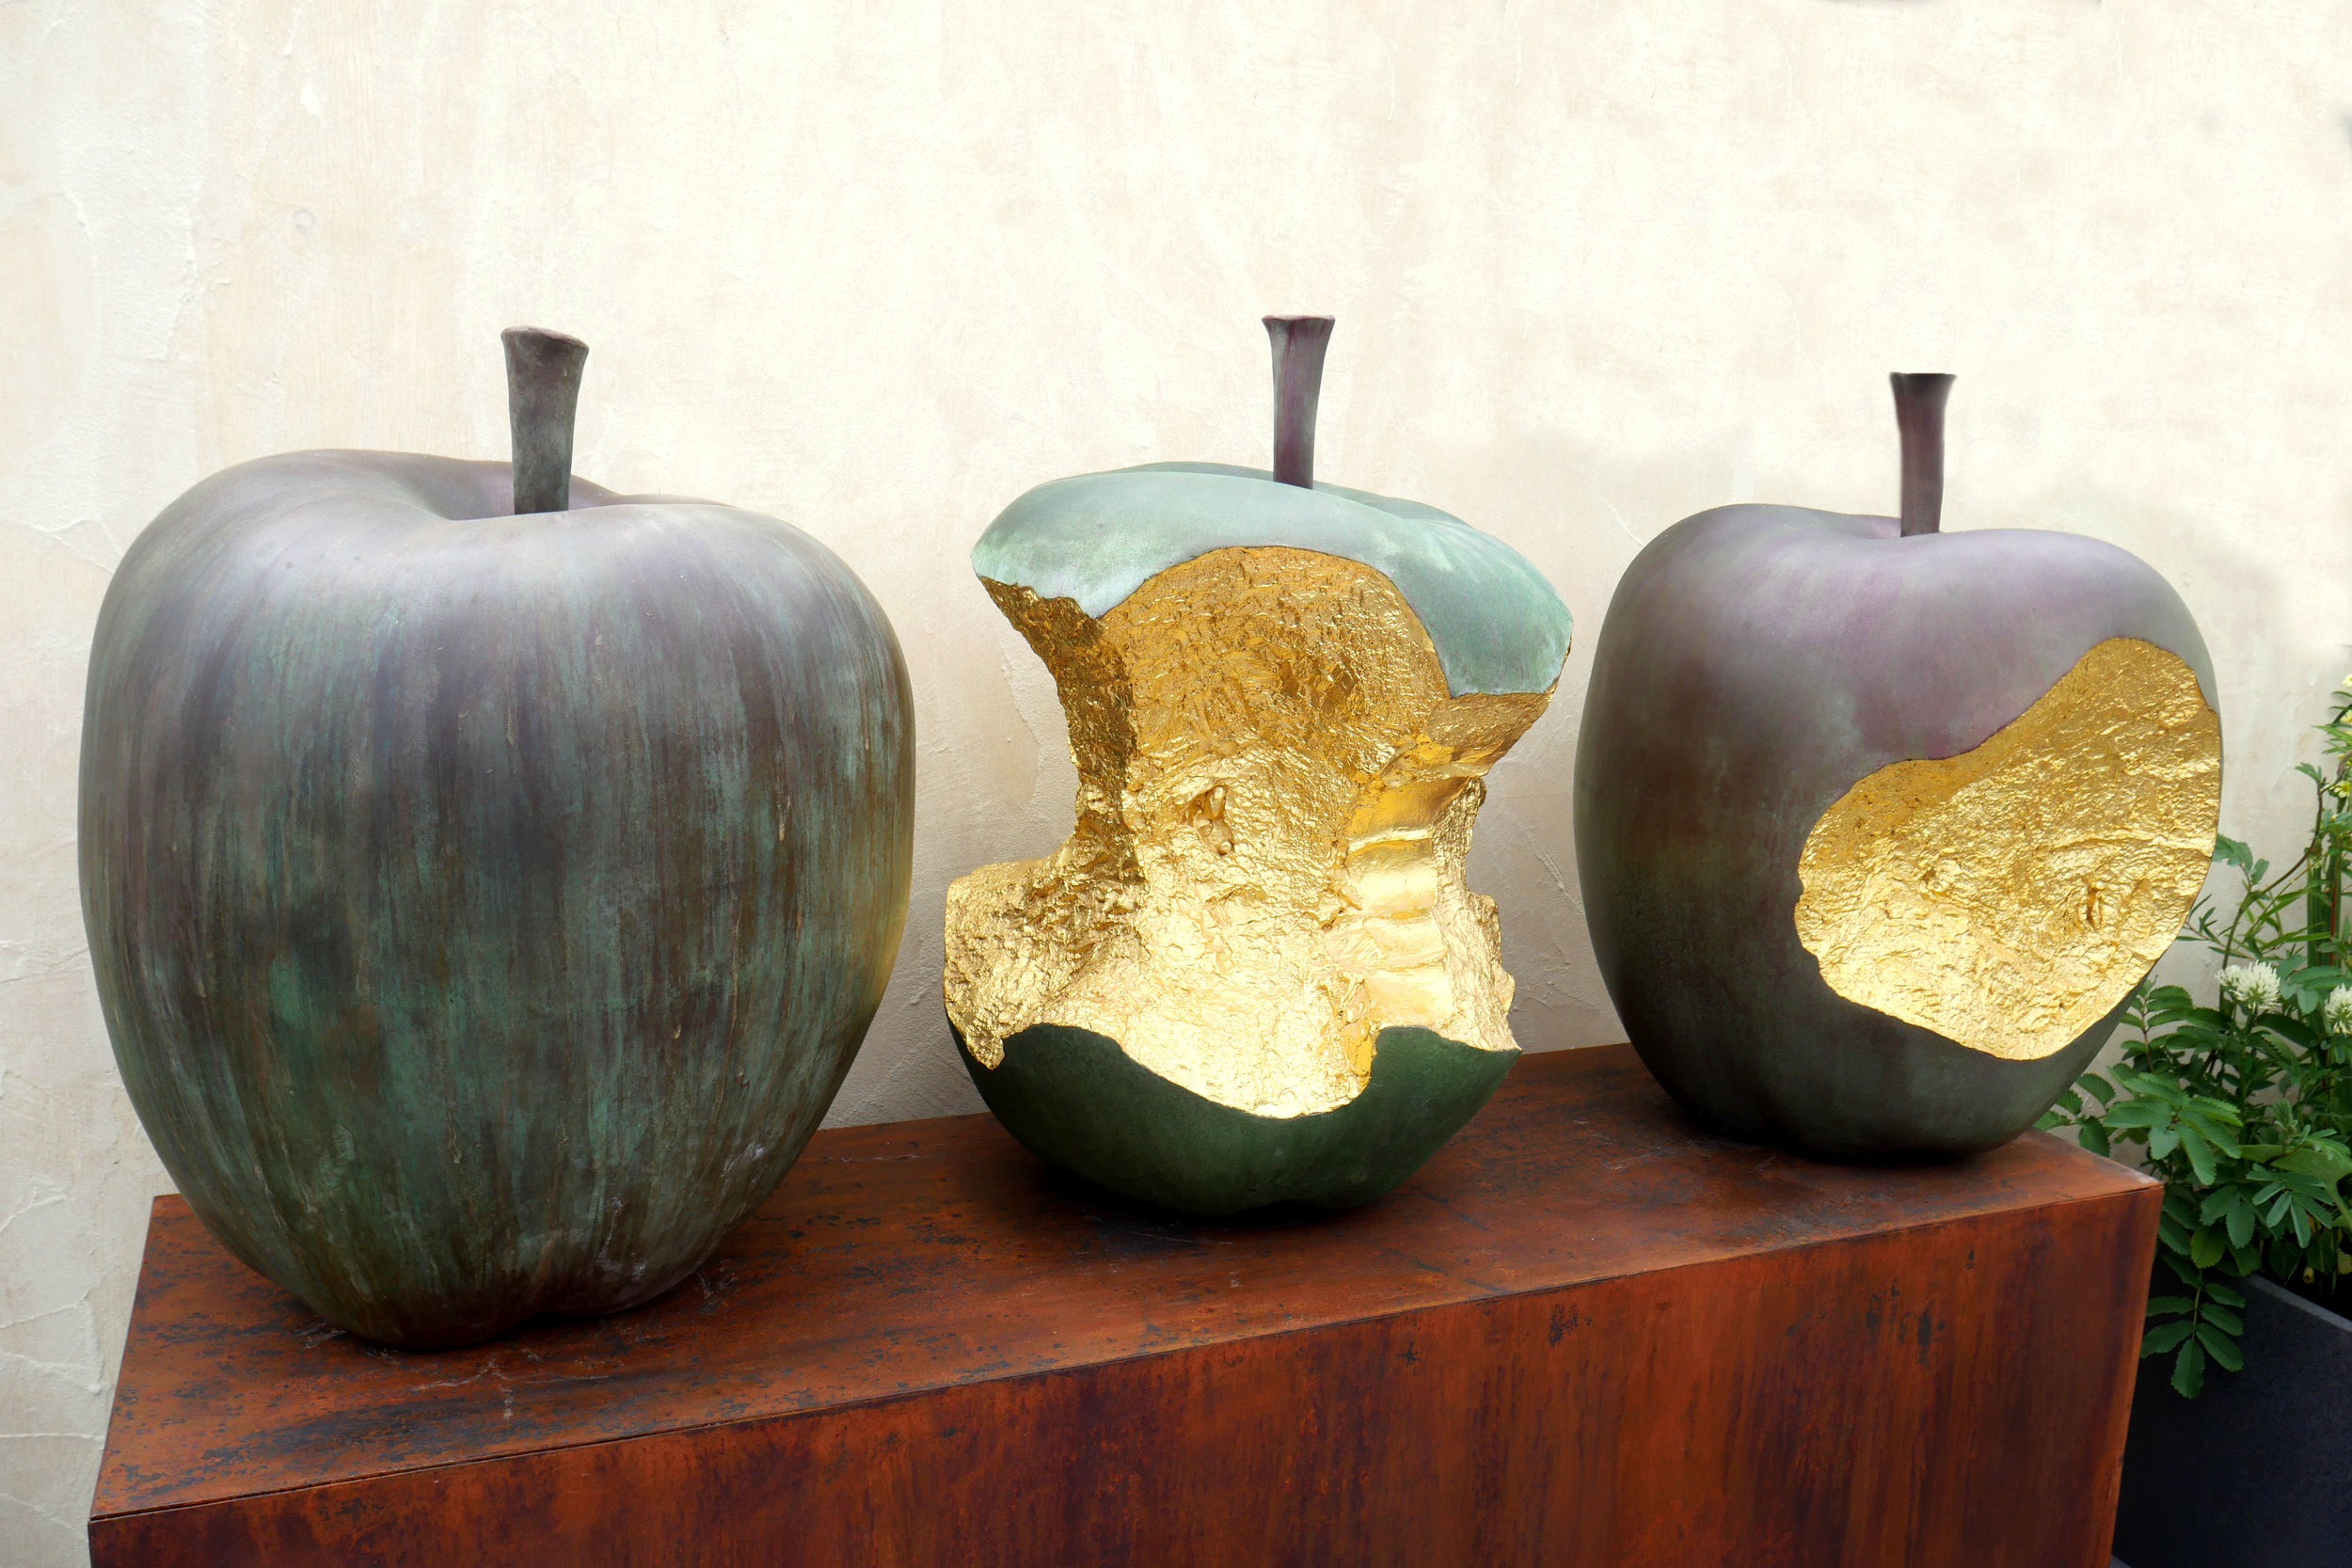 - Cast silicone bronze Apples. Patinated, with 24 carat gold leaf.Height 730mmFull apple £7,000Core £9,000Bite £8,000Set of 3 £22,000(prices including delivery within the UK)